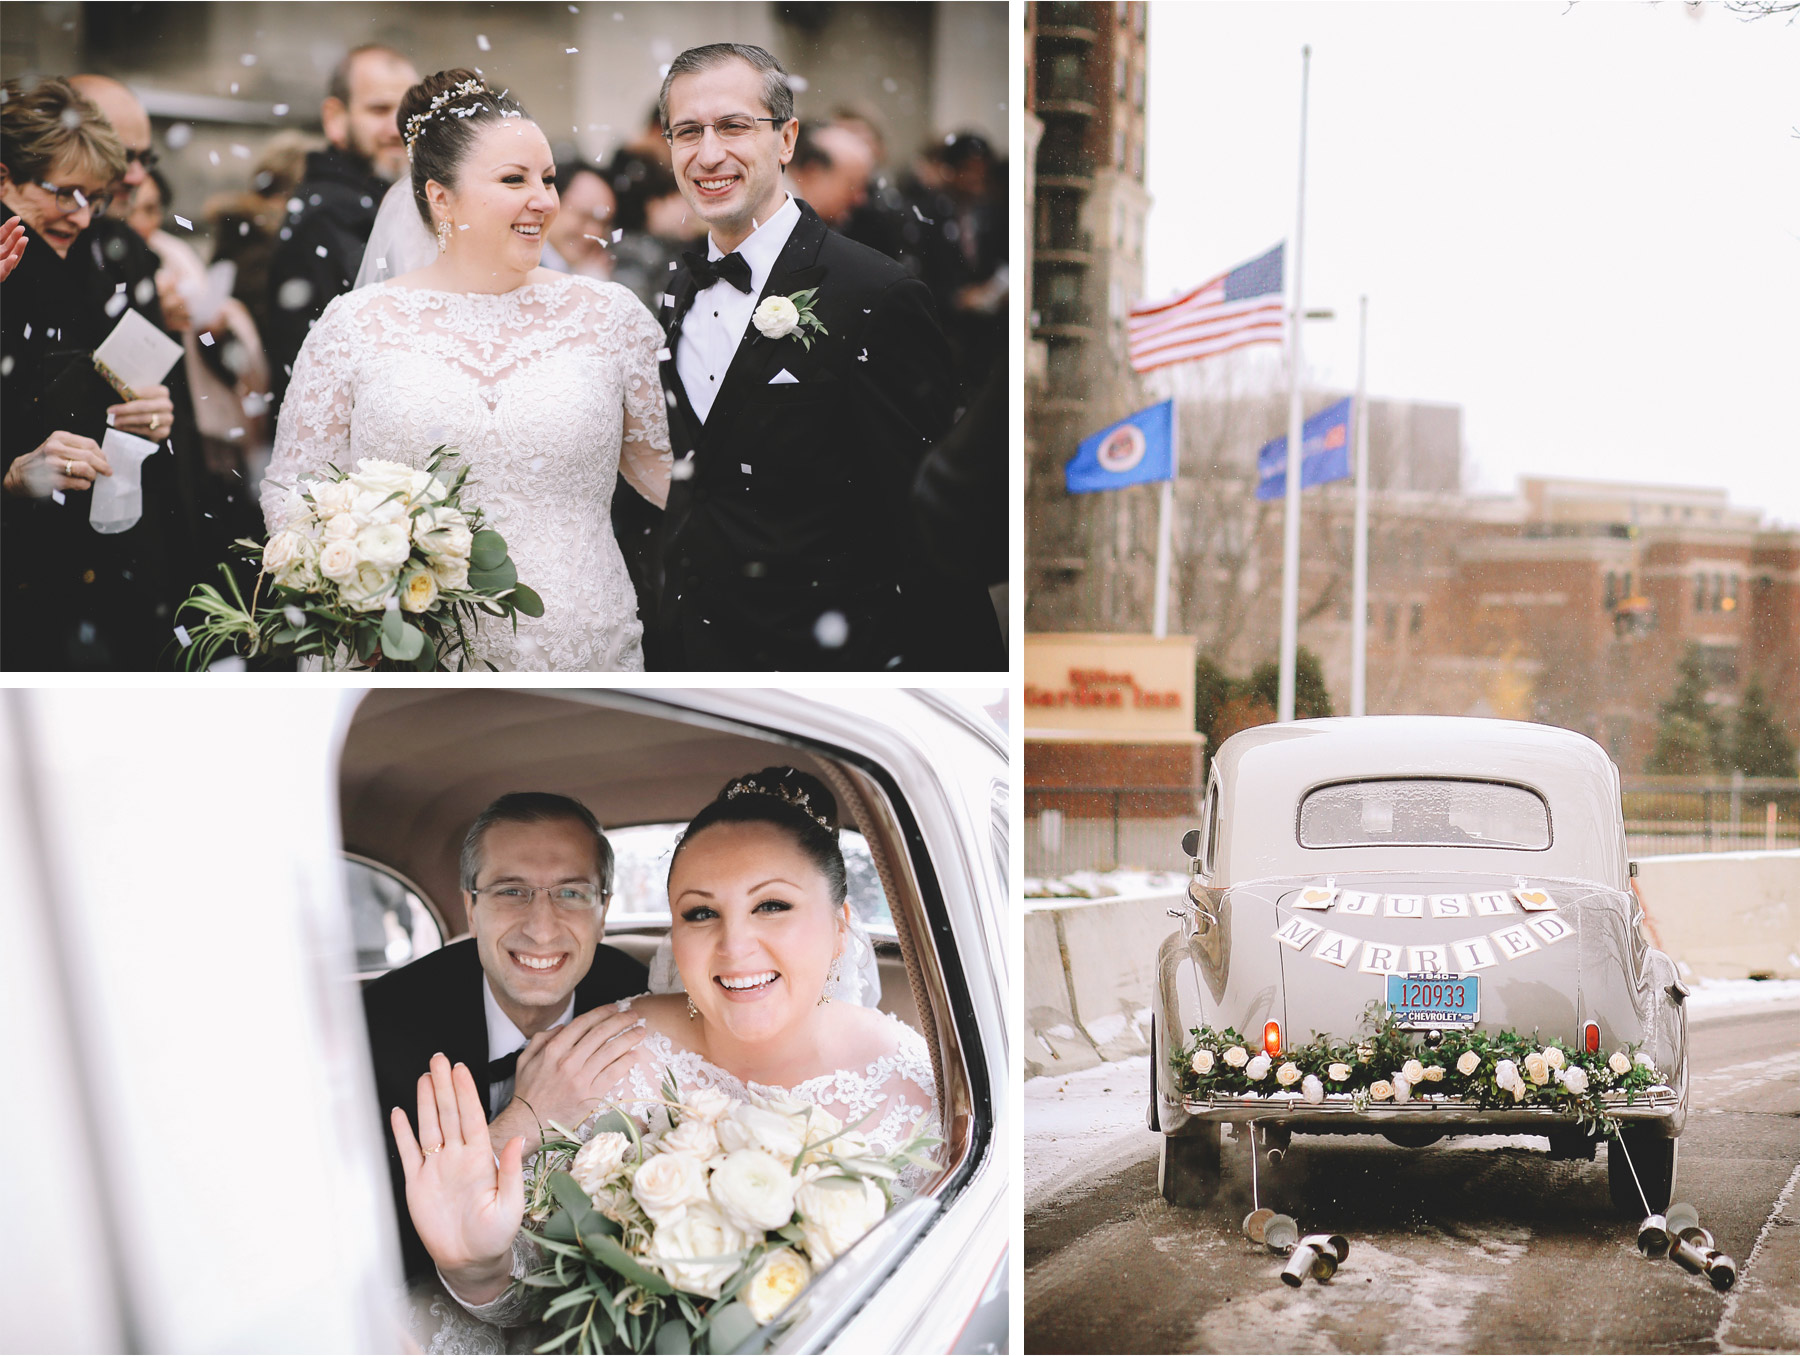 11-Minneapolis-Minnesota-Wedding-Photography-by-Vick-Photography-Ceremony-Central-Lutheran-church-Confetti-Classic-Car-Anja-and-Waseem.jpg